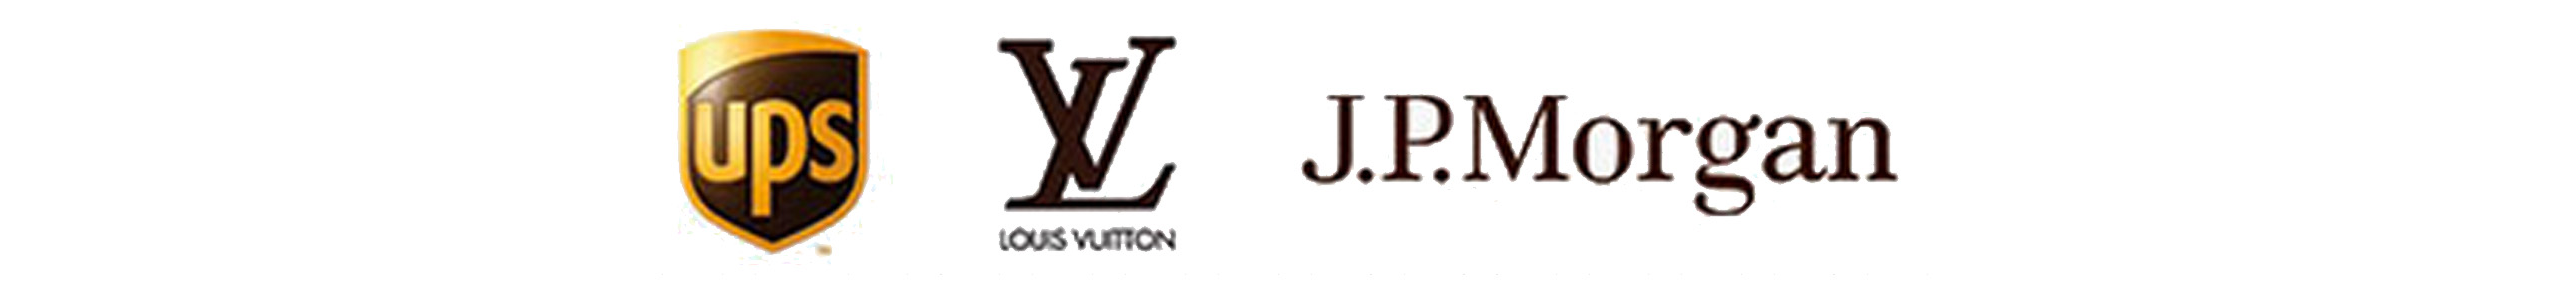 brown-color-brand